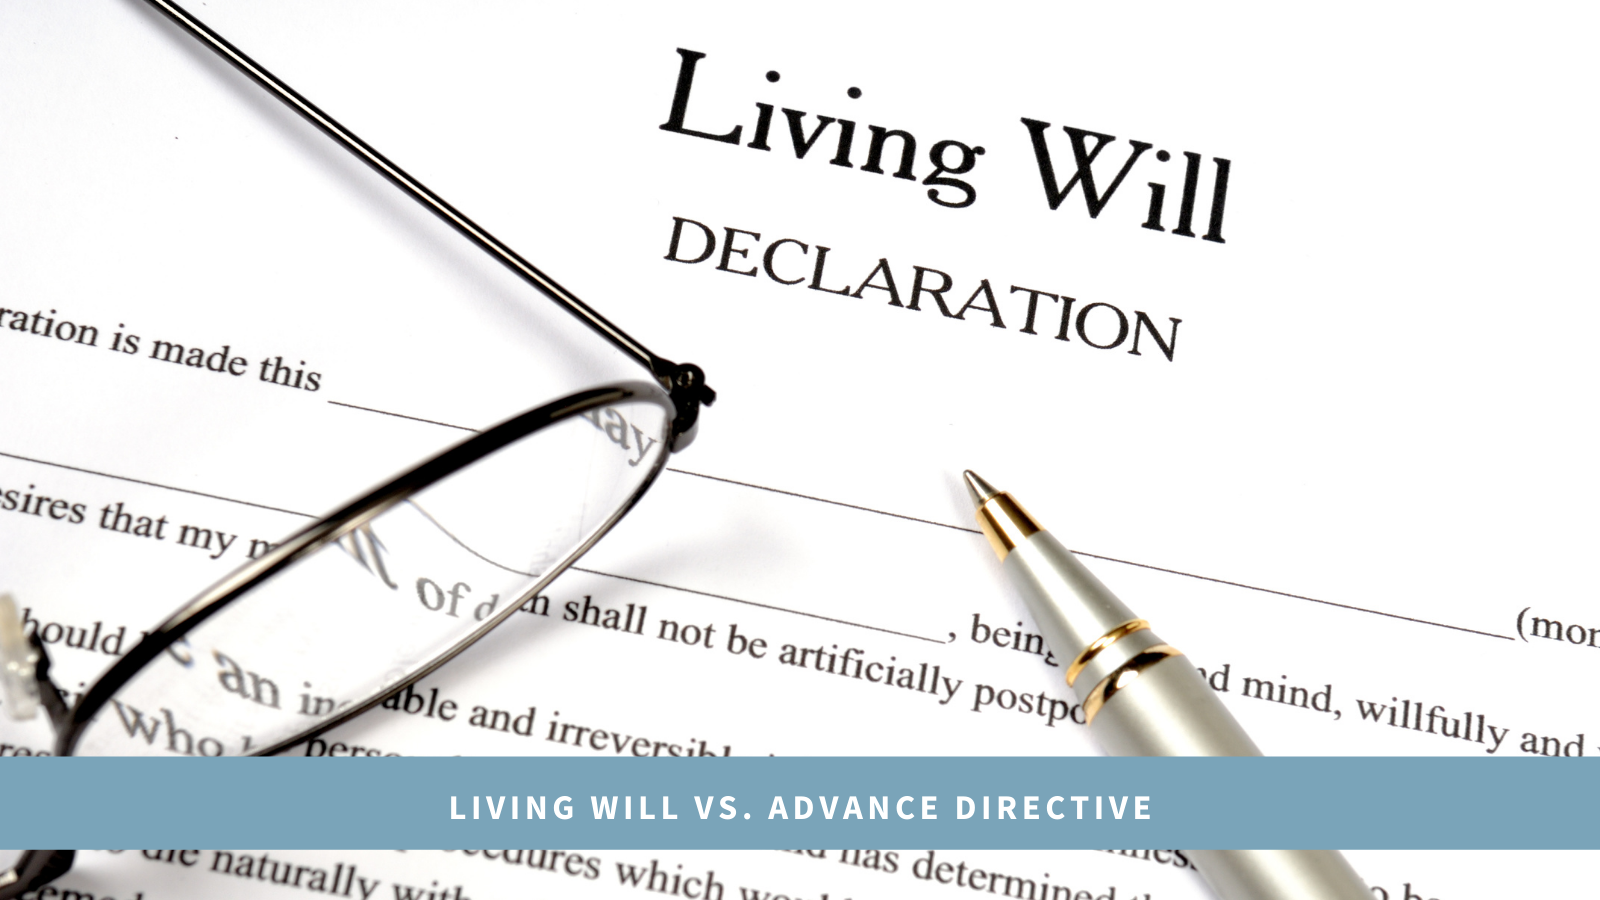 Ccha may 2021 living will vs advance directive